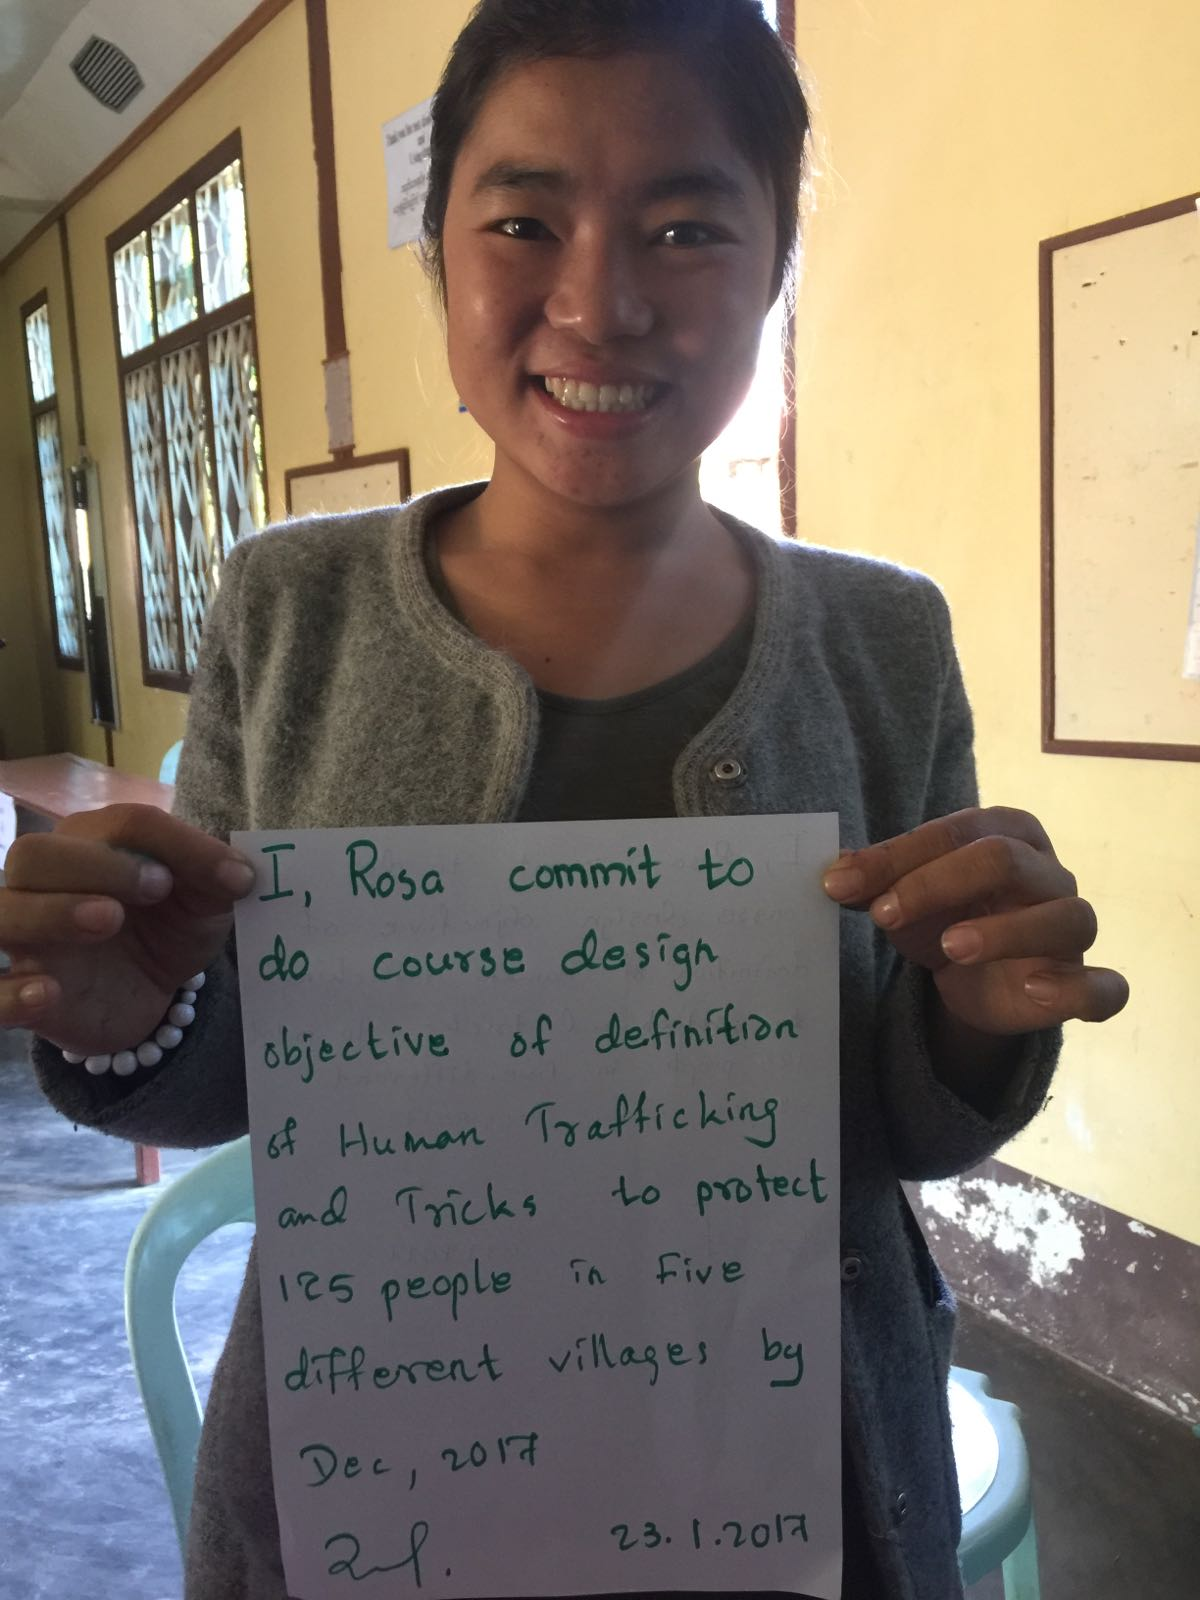 On day 7 after training 19 teachers trainees, 40 villagers and 40 children from orphanages, all 16 trainers made personal commitments to train others in different villages throughout the year.